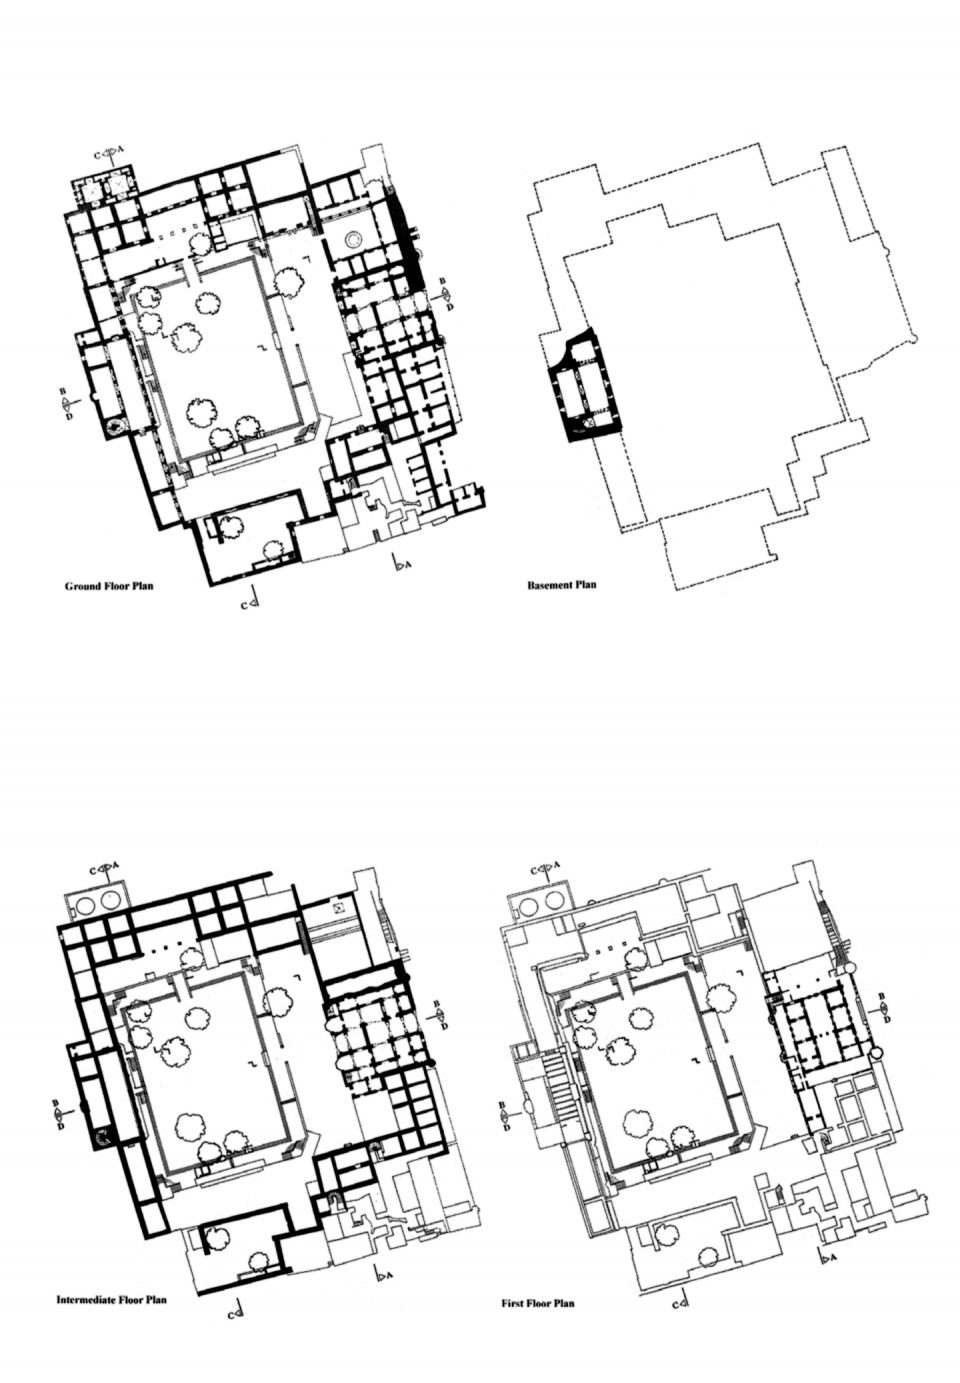 Floor plans: Ground, Basement, 'Intermediate floor' and First Floor